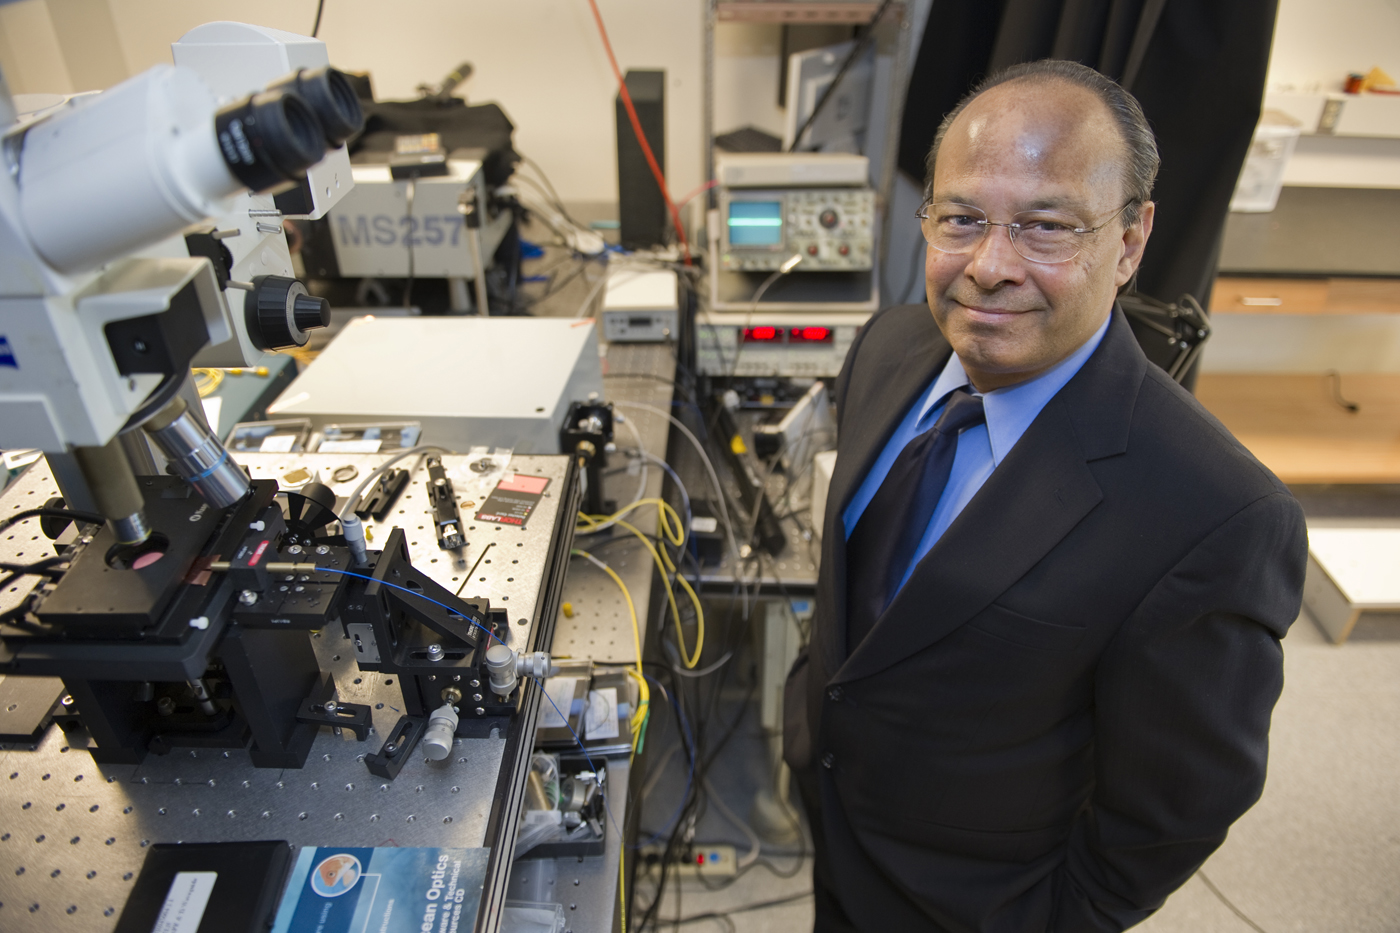 Arts and Sciences Distinguished Professor Srinivas Sridhar, who is in the Department of Physics and is the director of the CaNCURE and IGERT nanomedicine programs. Northeastern University photo